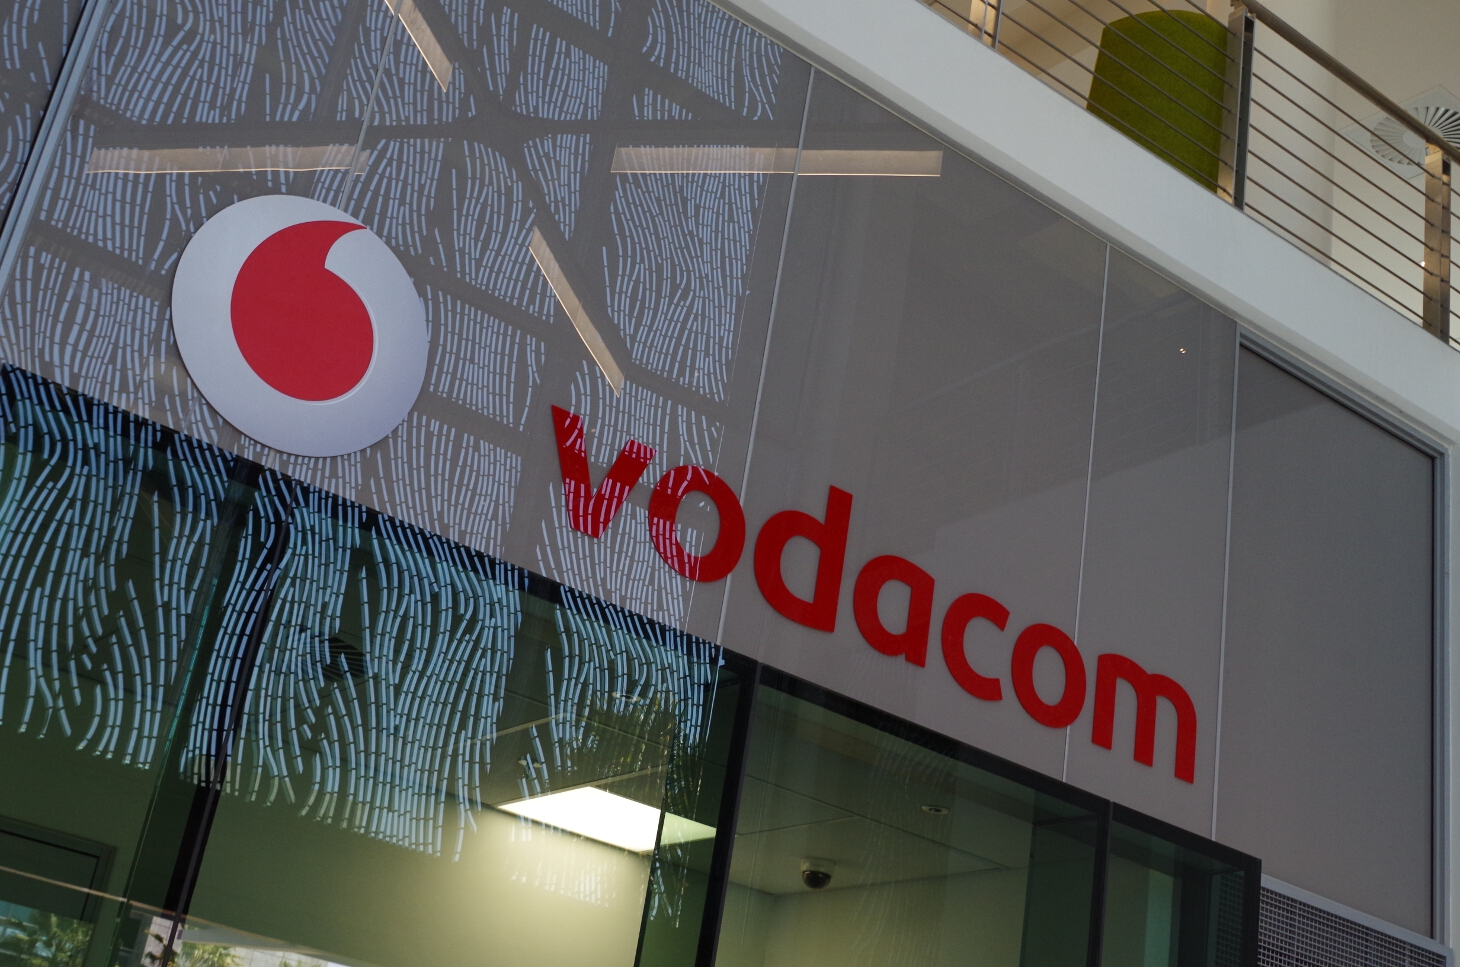 Vodacom targets townships for data network upgrades